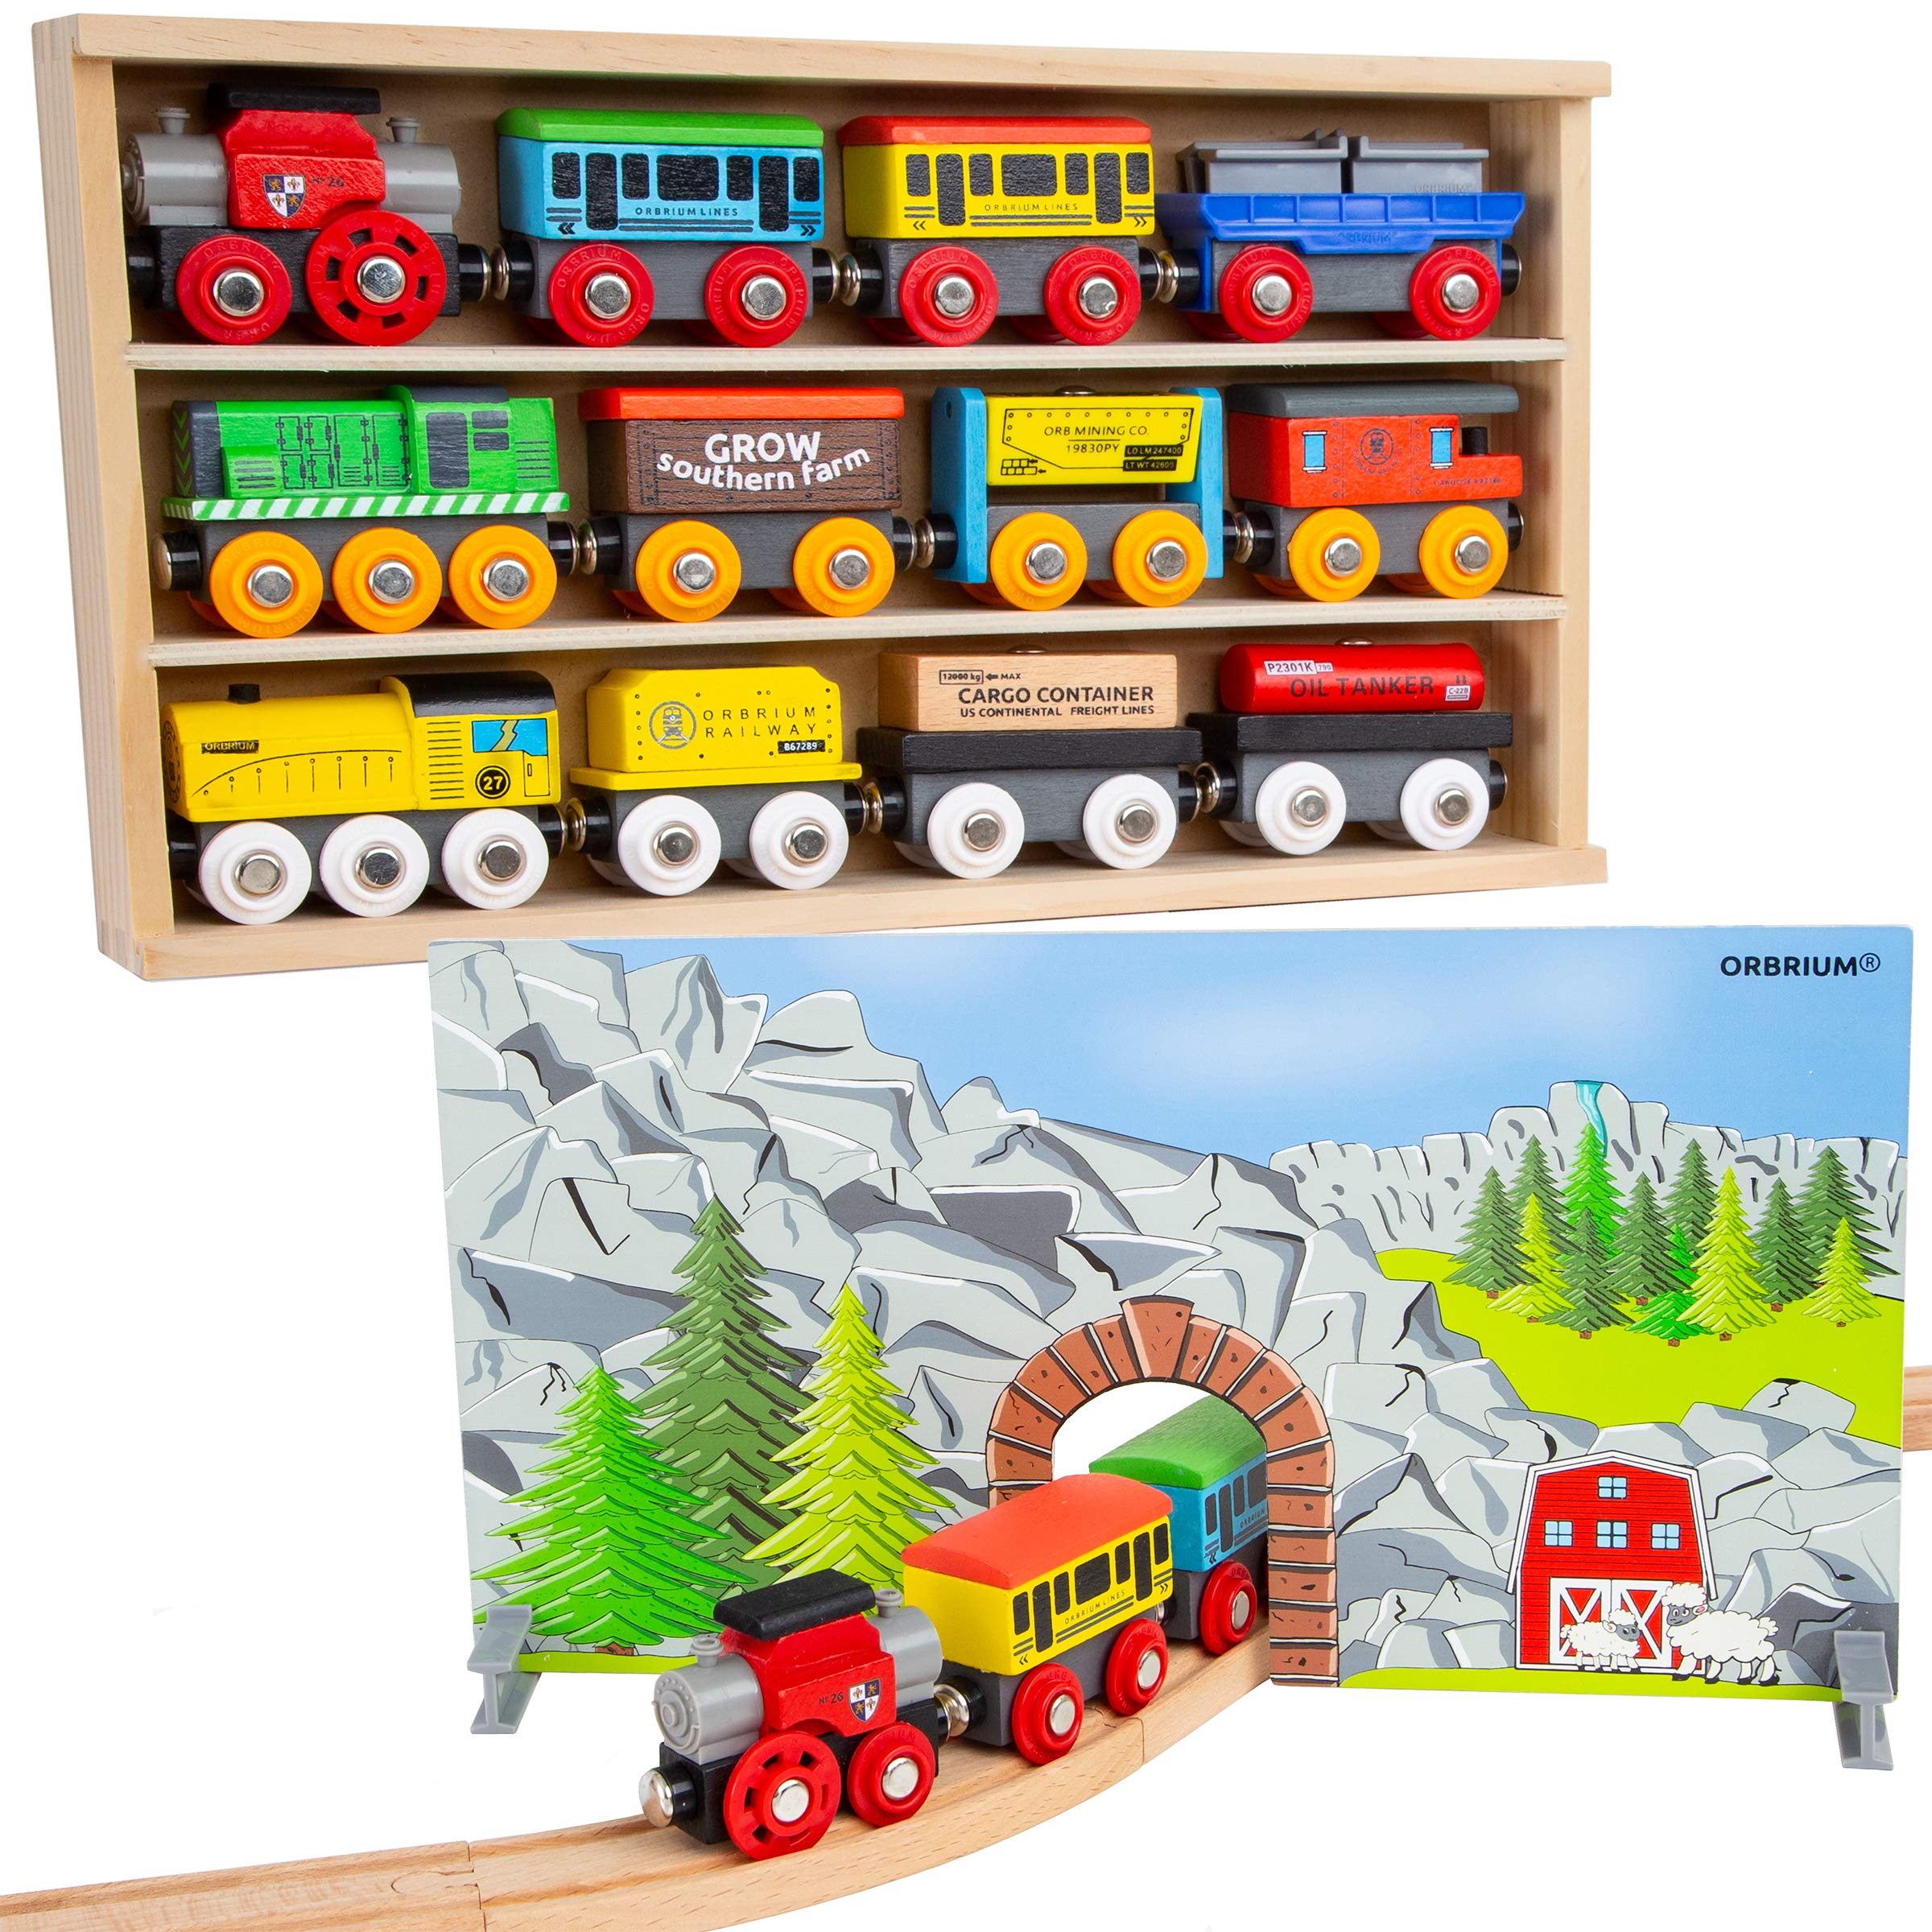 Orbrium Toys 12 (20 Pcs) Wooden Train Cars for Kids + Dual-use Wooden Box Cover/Tunnel Wooden Train Set Trains Toy Compatible with Thomas Wooden Railway, Thomas The Tank Engine, Brio by Orbrium